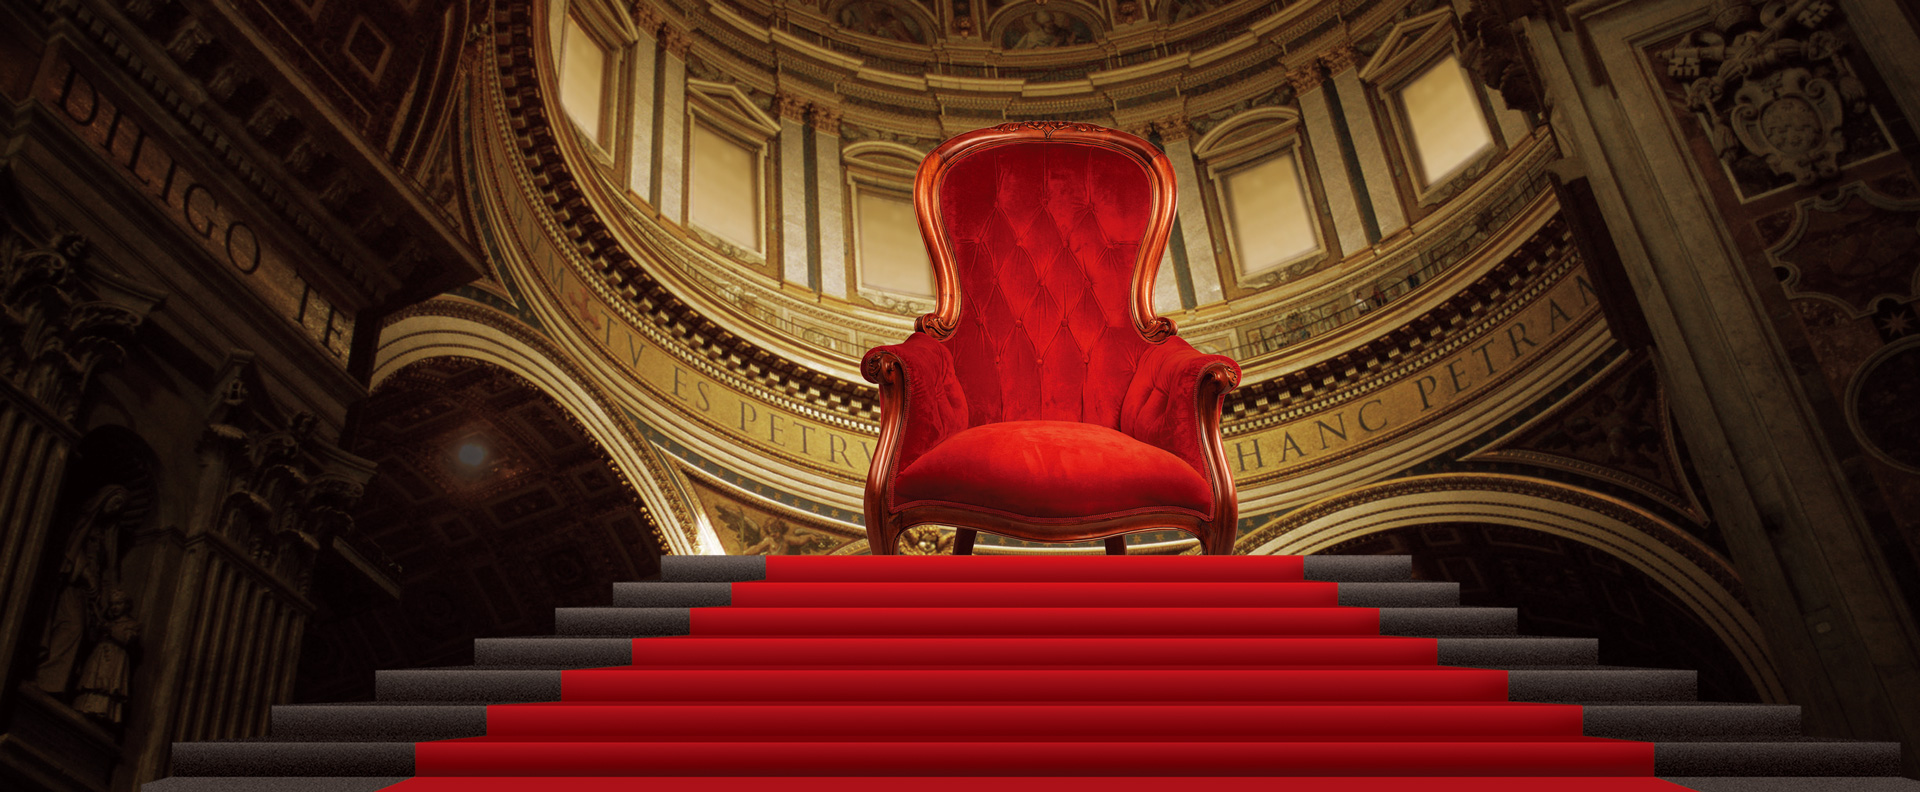 Throne Palace Stairs Chair Background Atmospheric